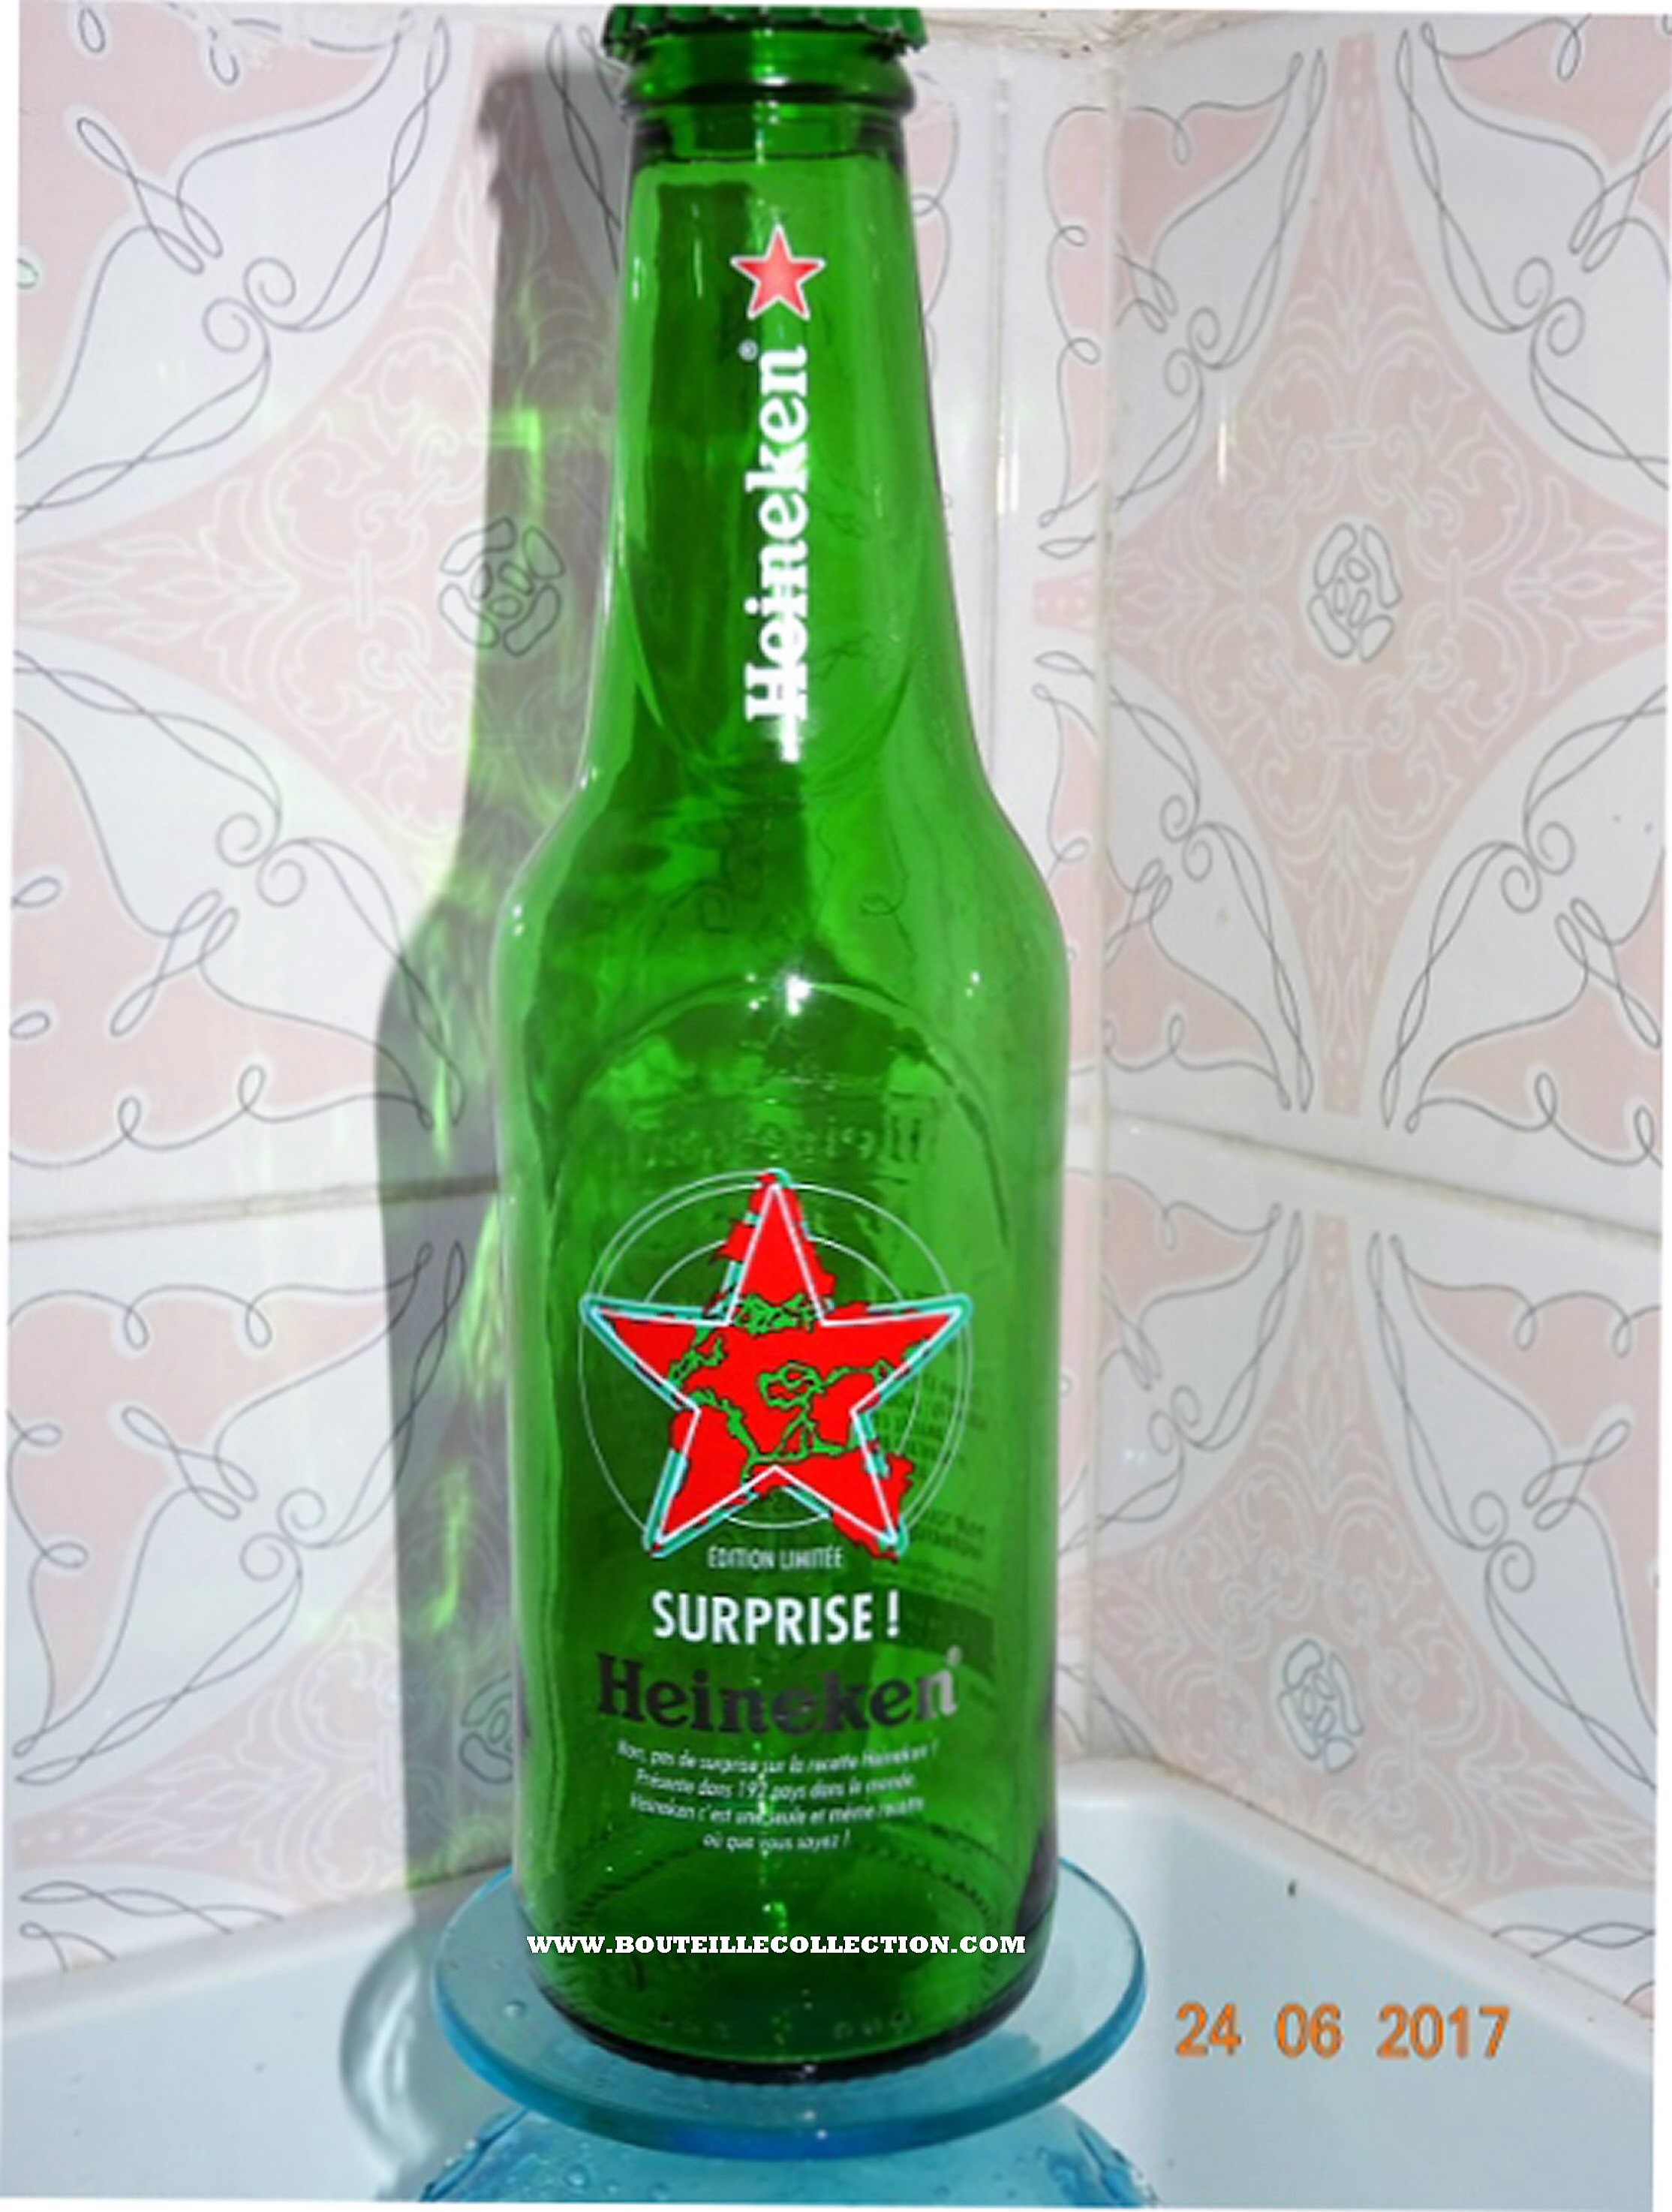 X HEINEKEN SURPRISE 2017 25CL B OK.jpg